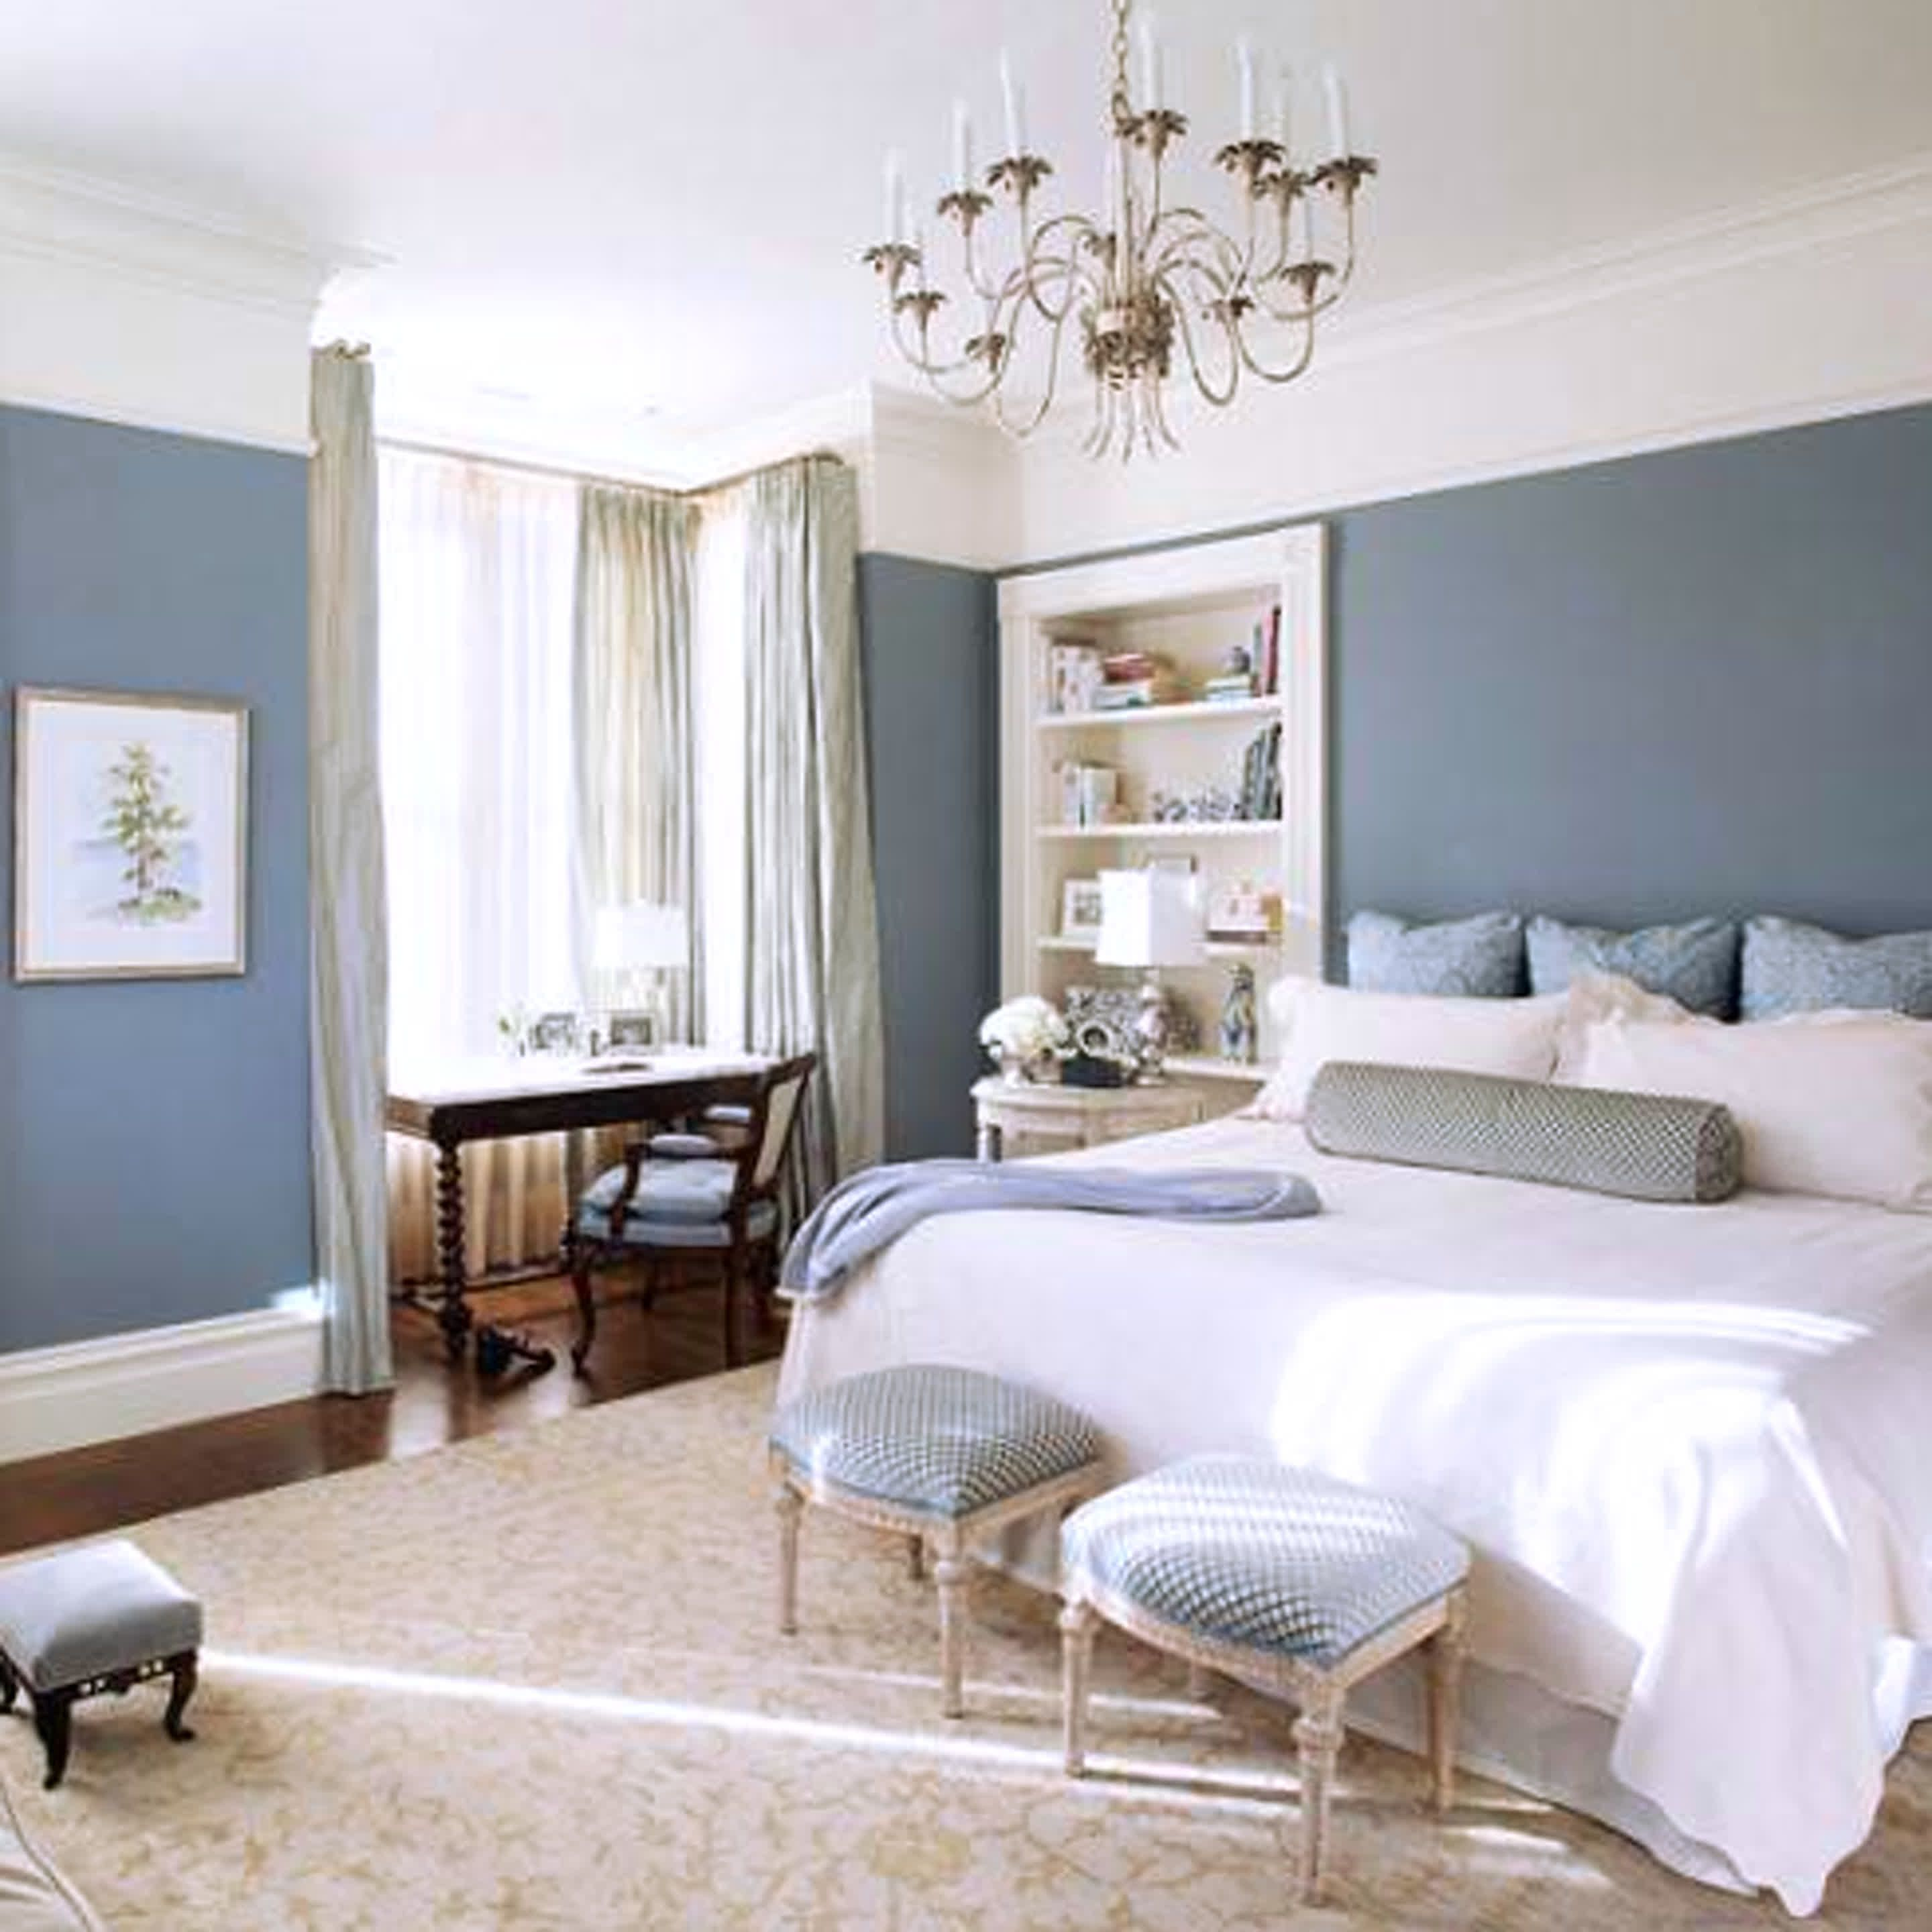 Dark Blue Gray Bedroom bedroom : peroconlagr blue accent wall bedroom ideas plus blue